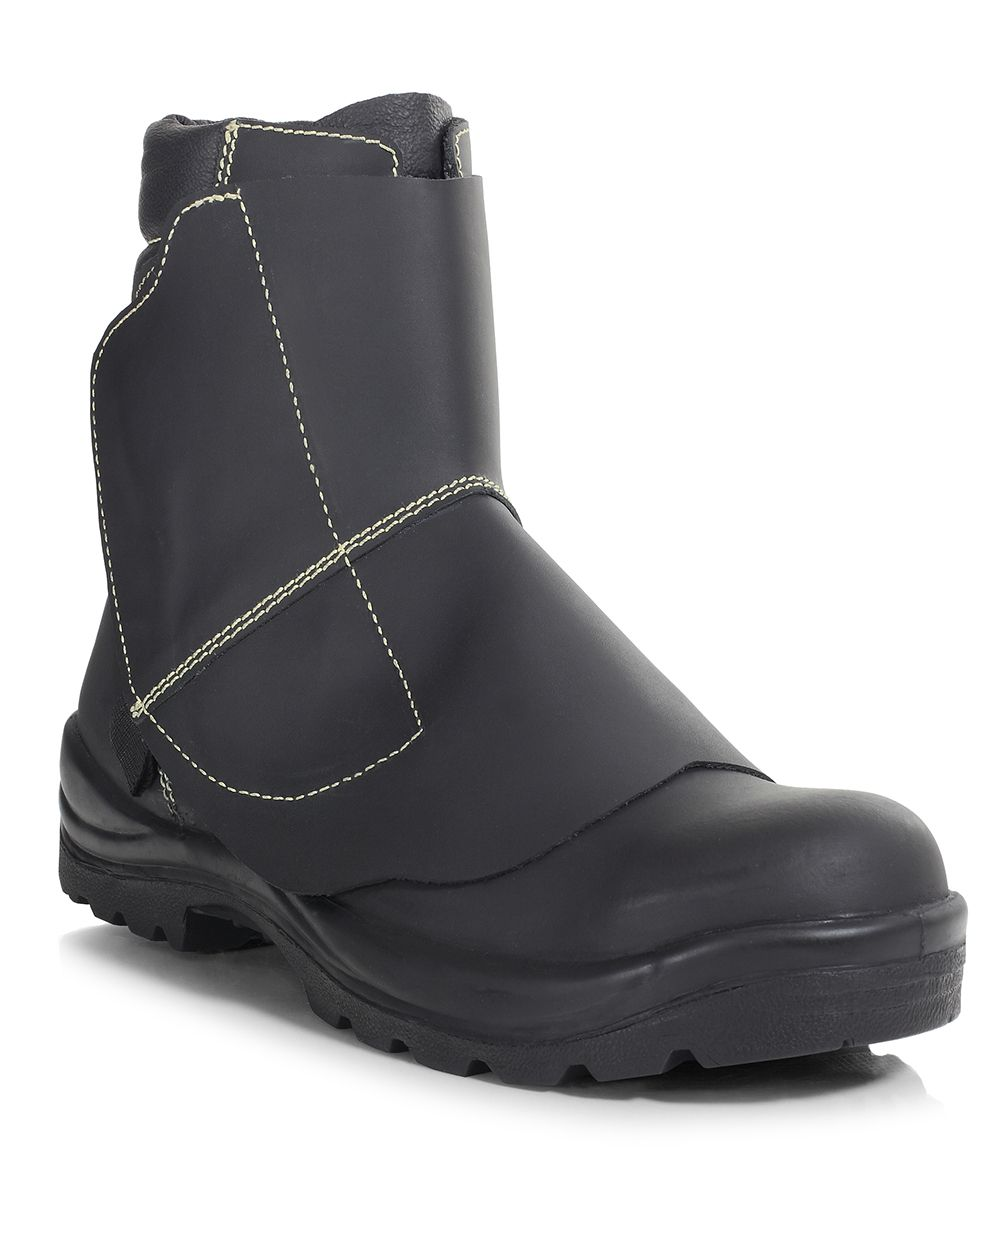 PB26 Steel Foundry Boot